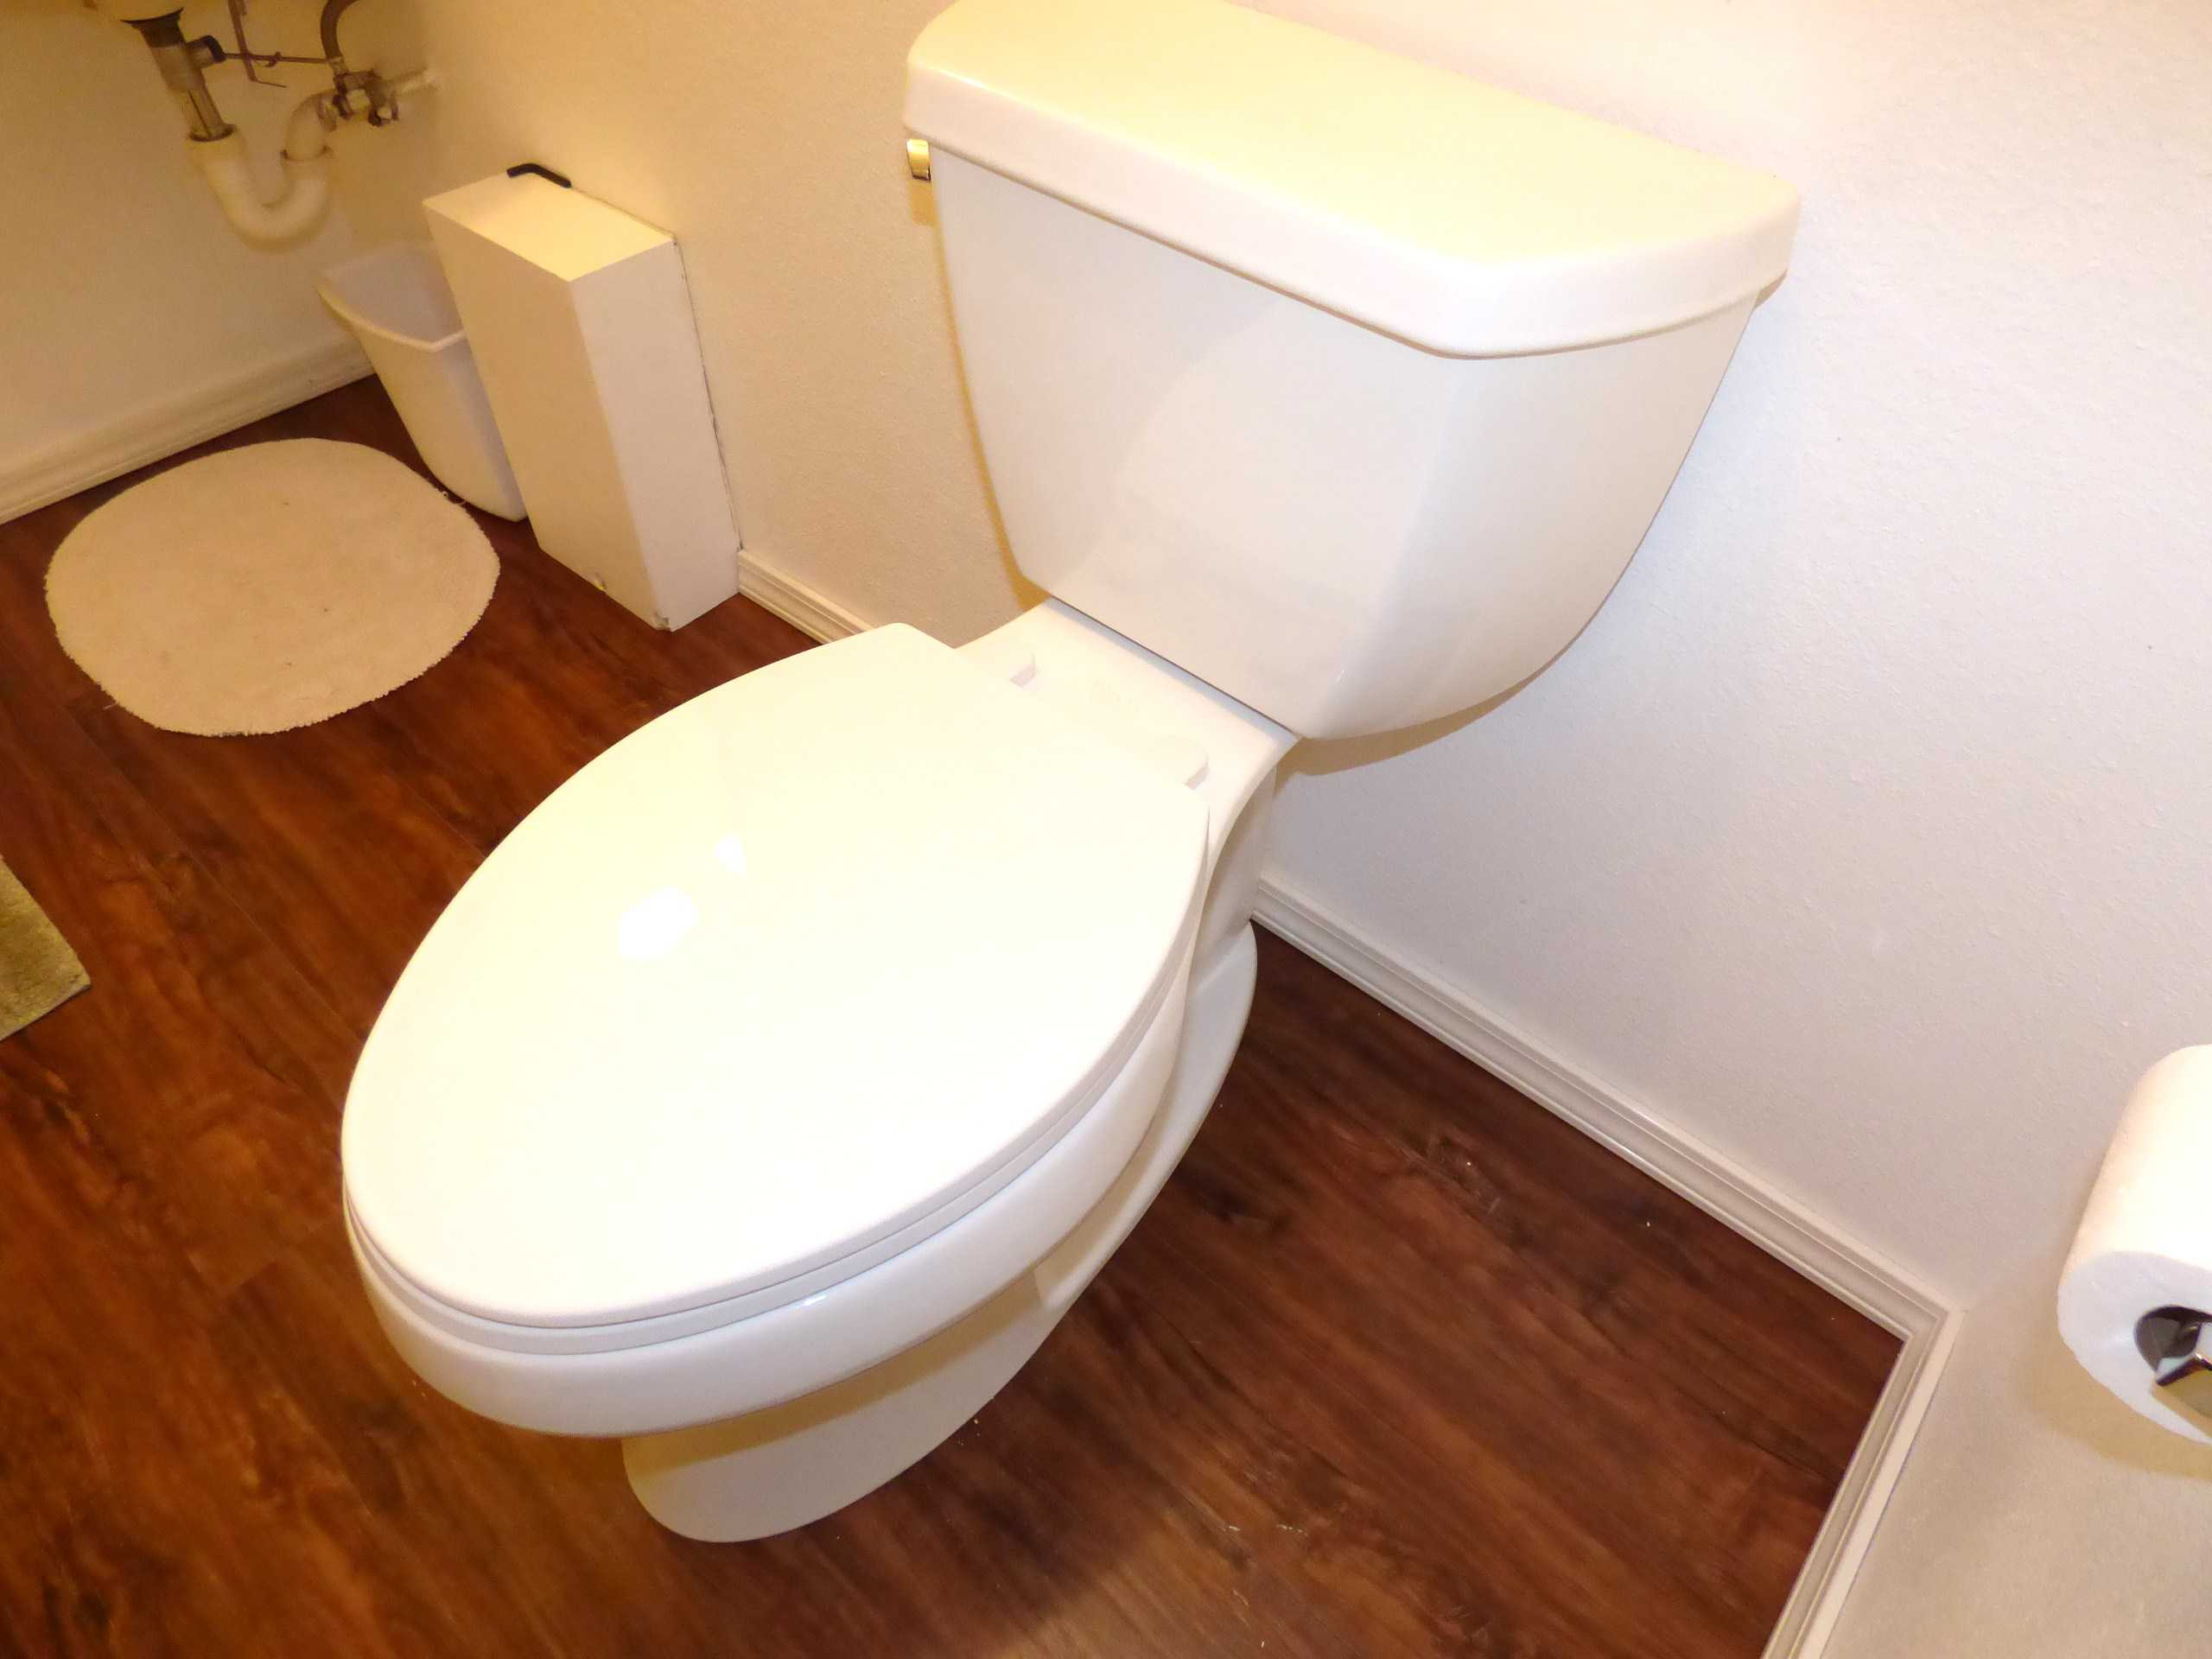 Making This Mass Market Toilet a Little Easier To Install